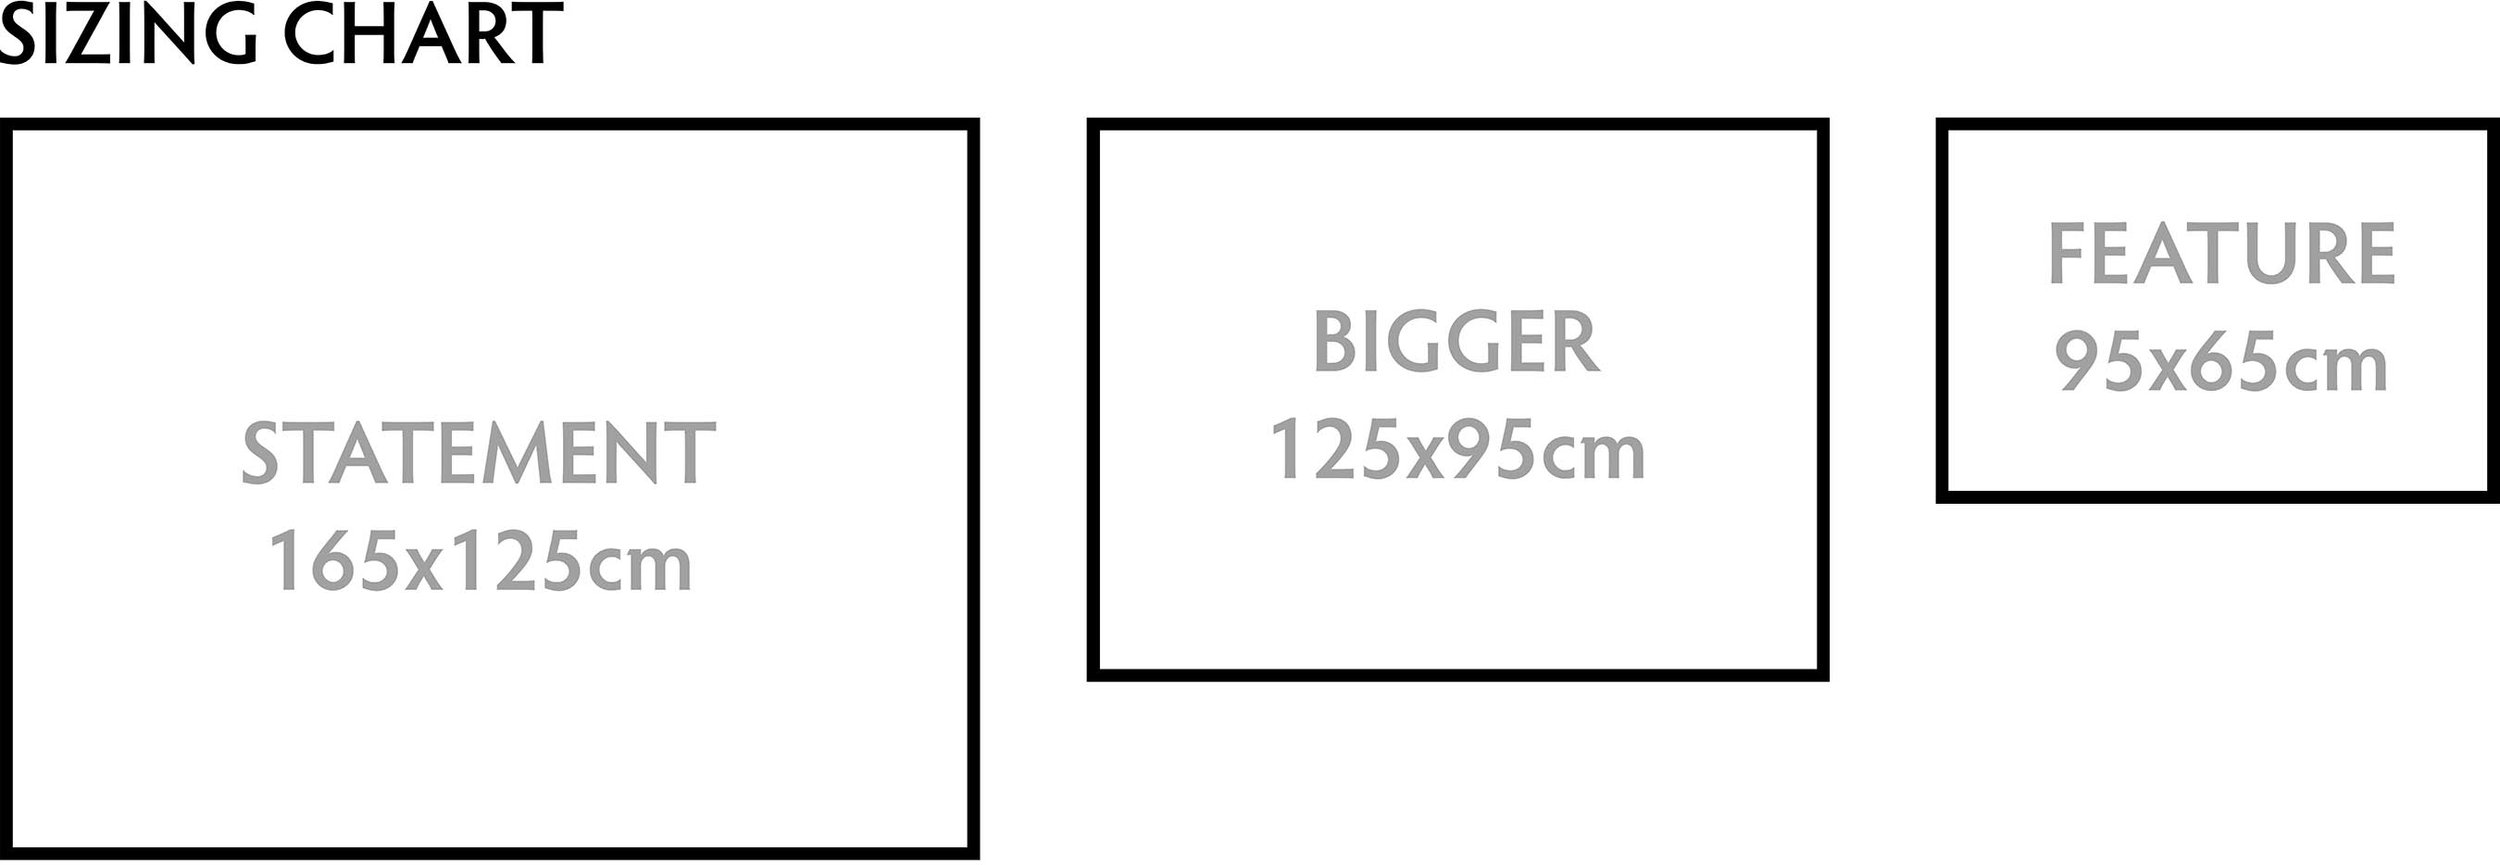 New Sizing Chart 3.jpg